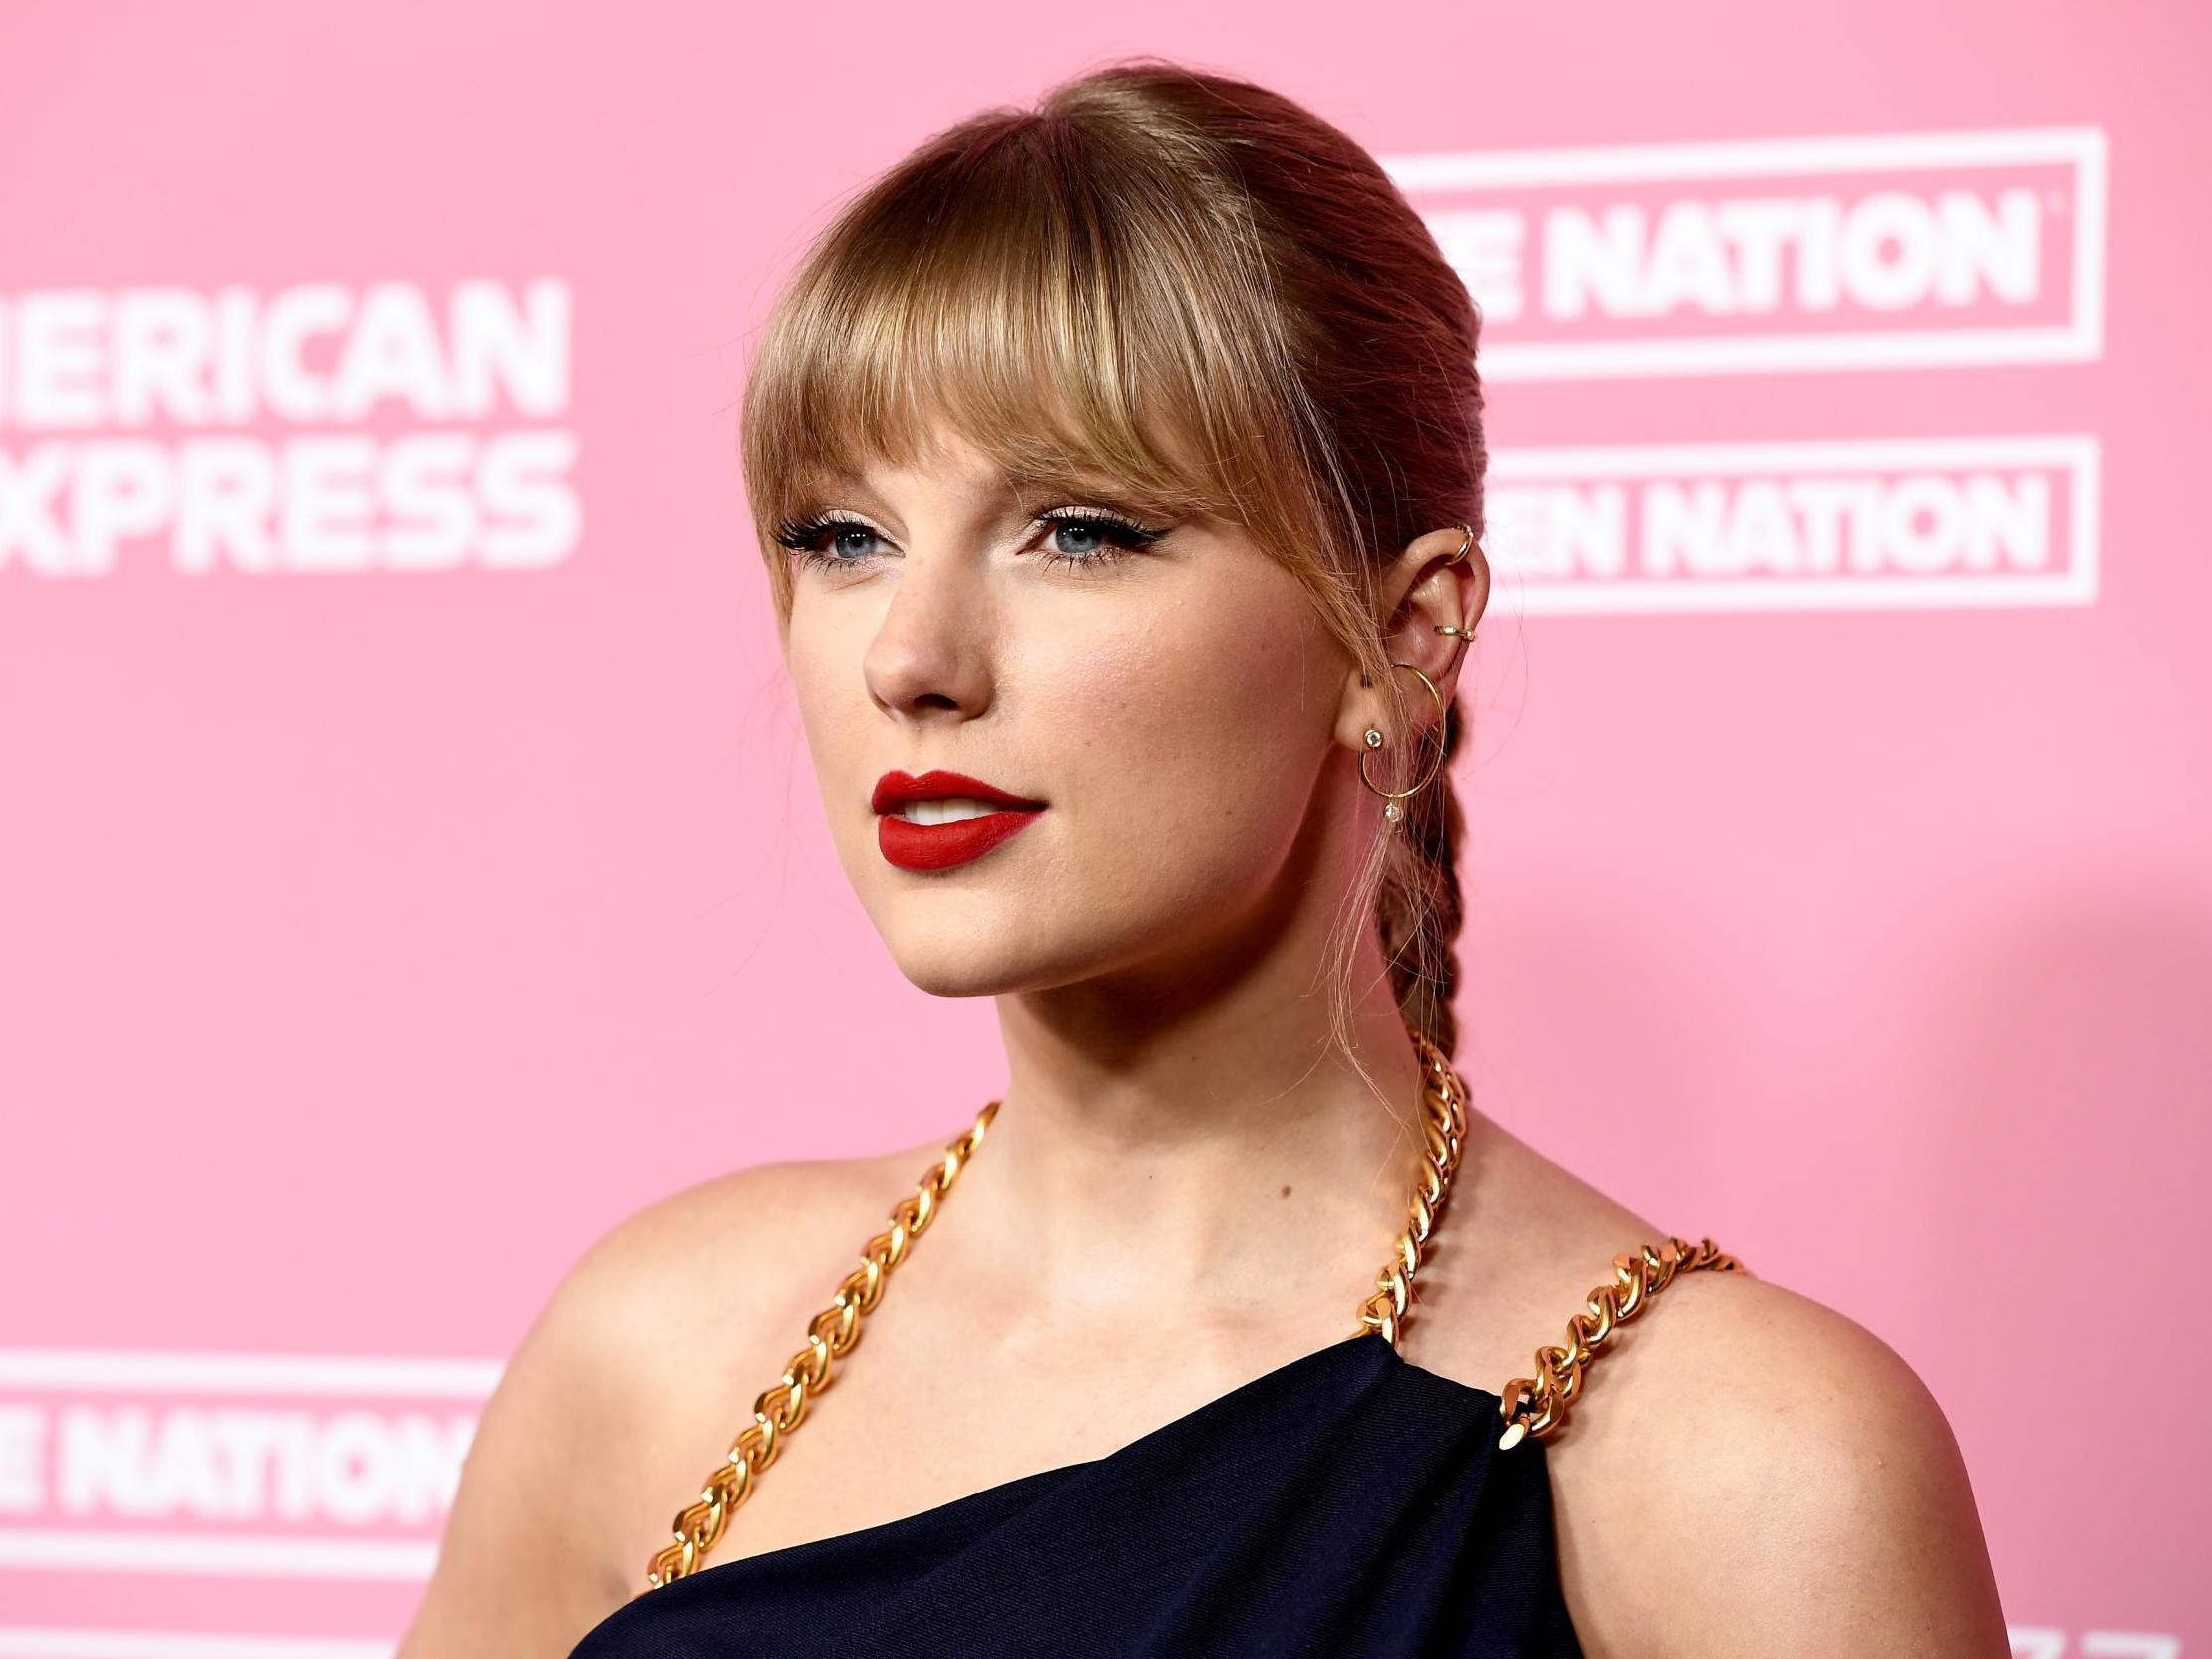 Taylor Swift Shares Photos From 30th Birthday Party Attended By Gigi Hadid Ryan Reynolds And Jonathan Van Ness The Independent The Independent